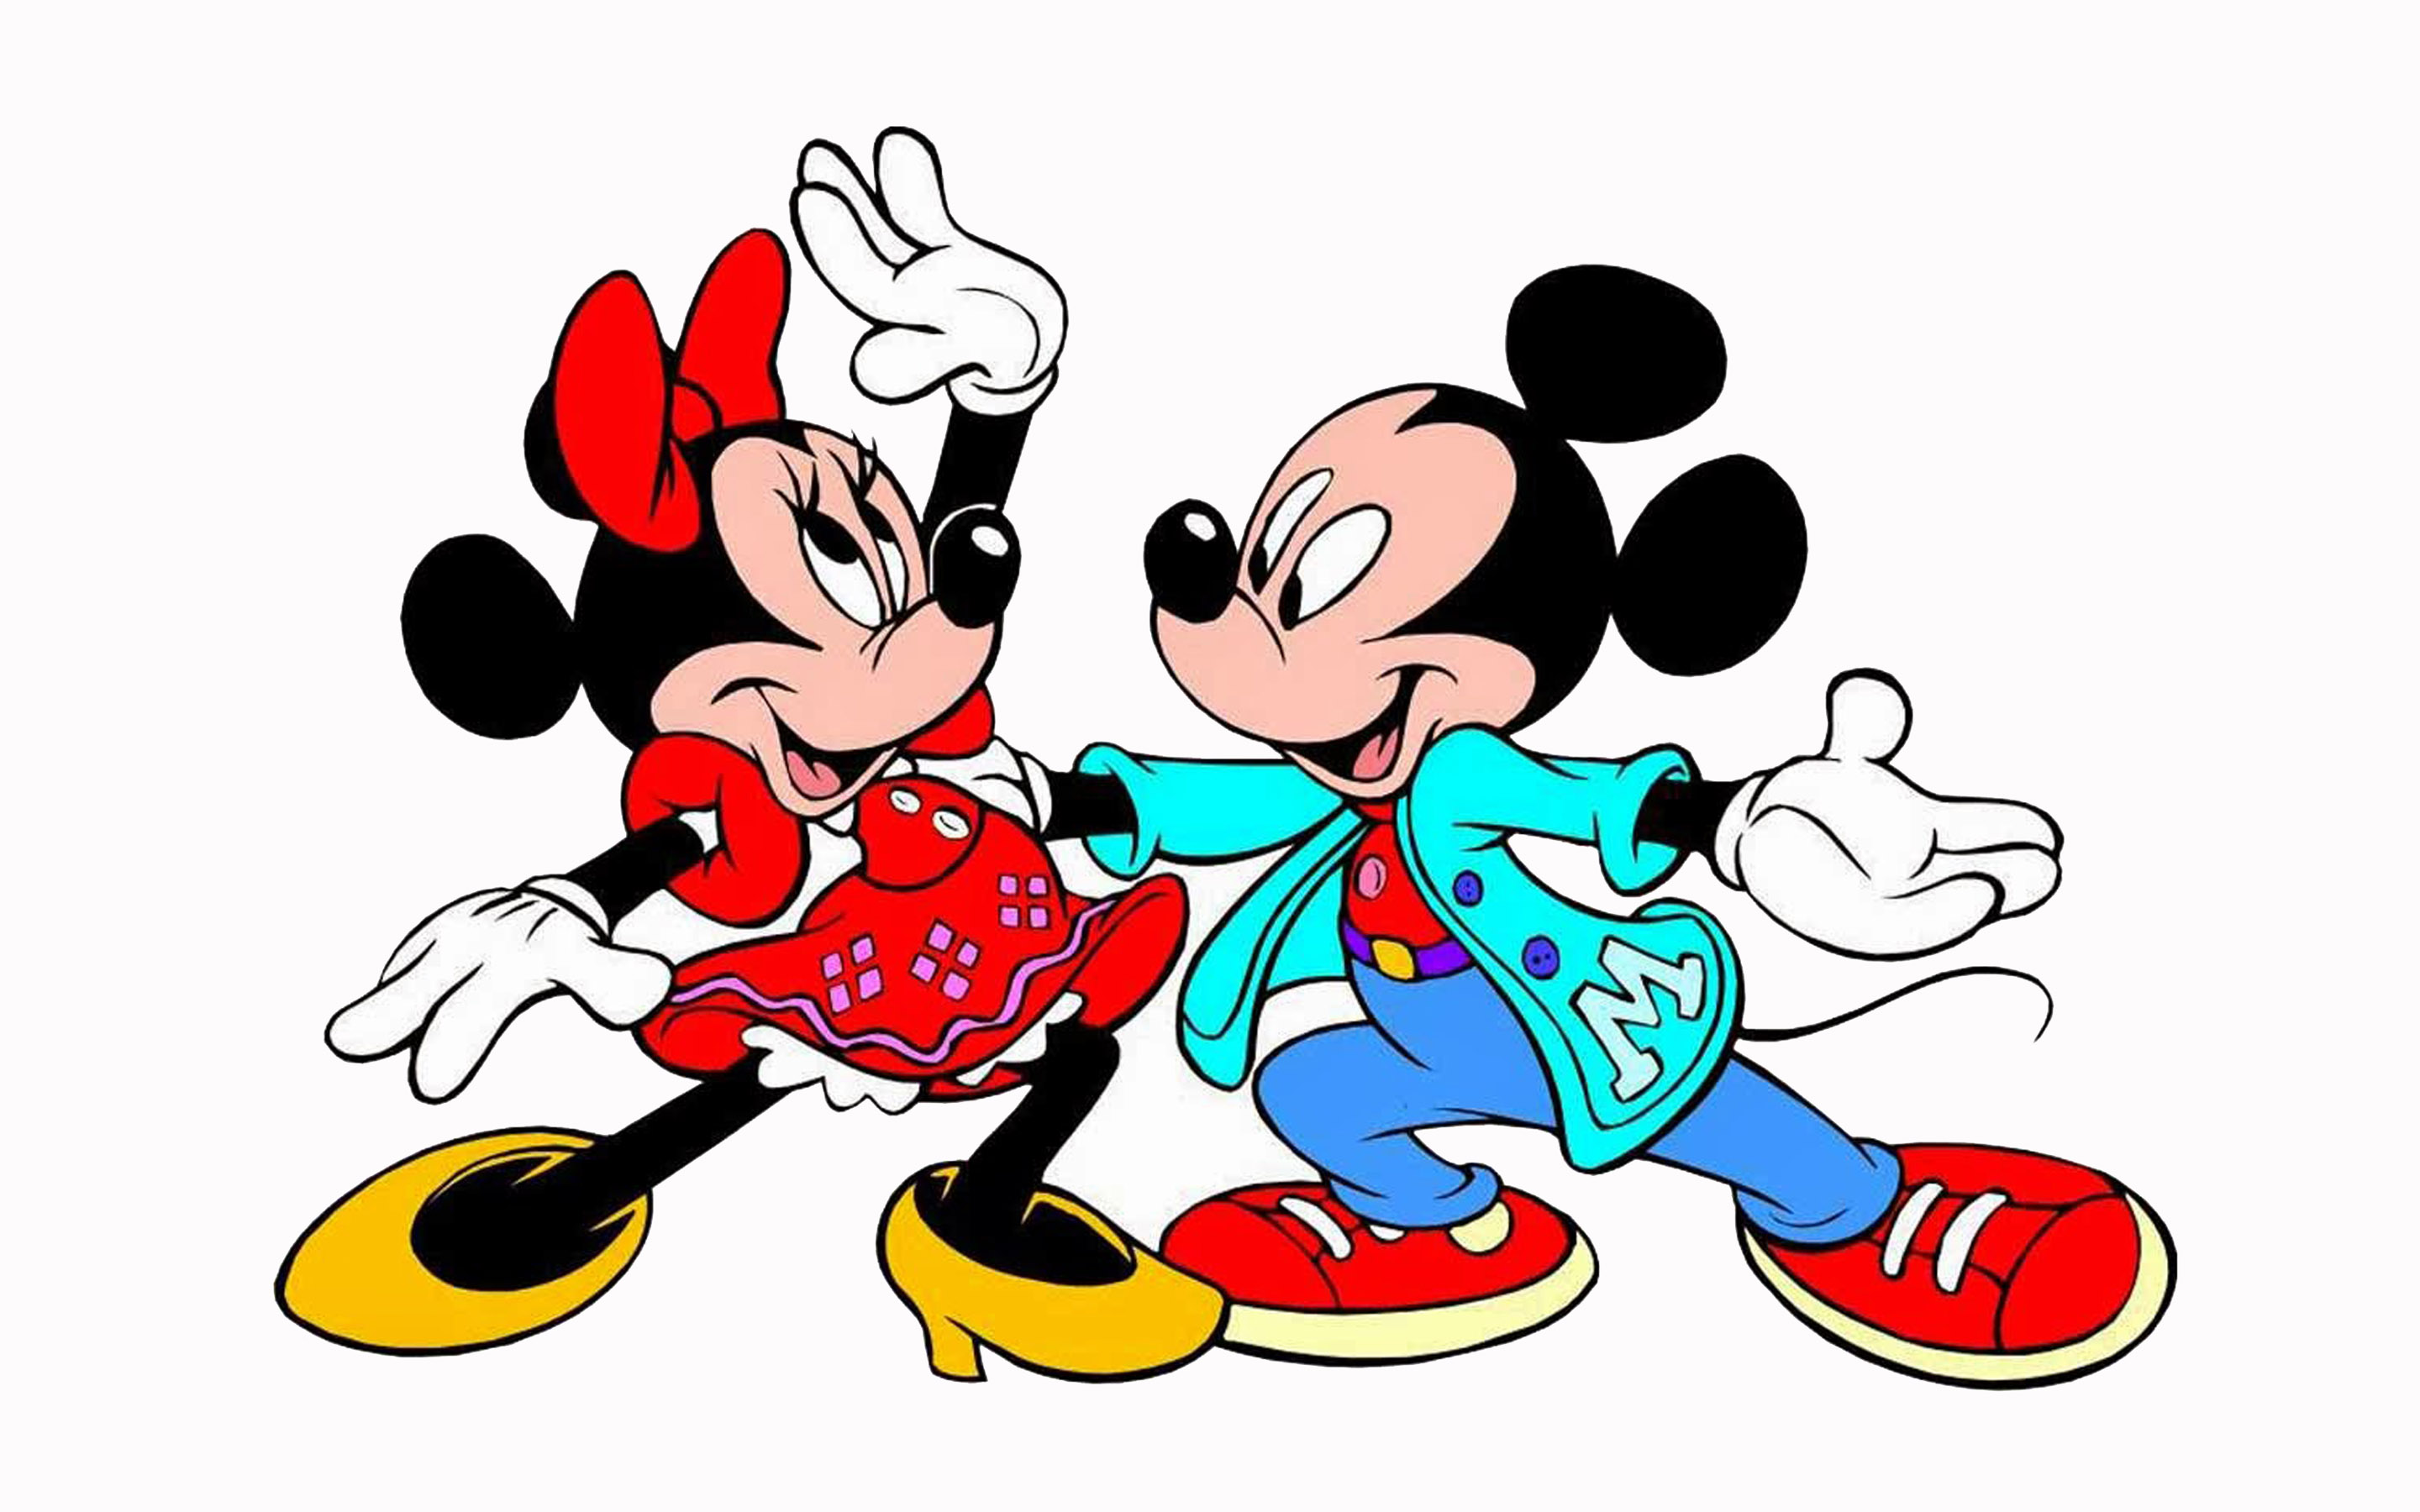 mickey minnie mouse dancing cartoons hd wallpapers for mobile phones and laptops wallpapers13 com